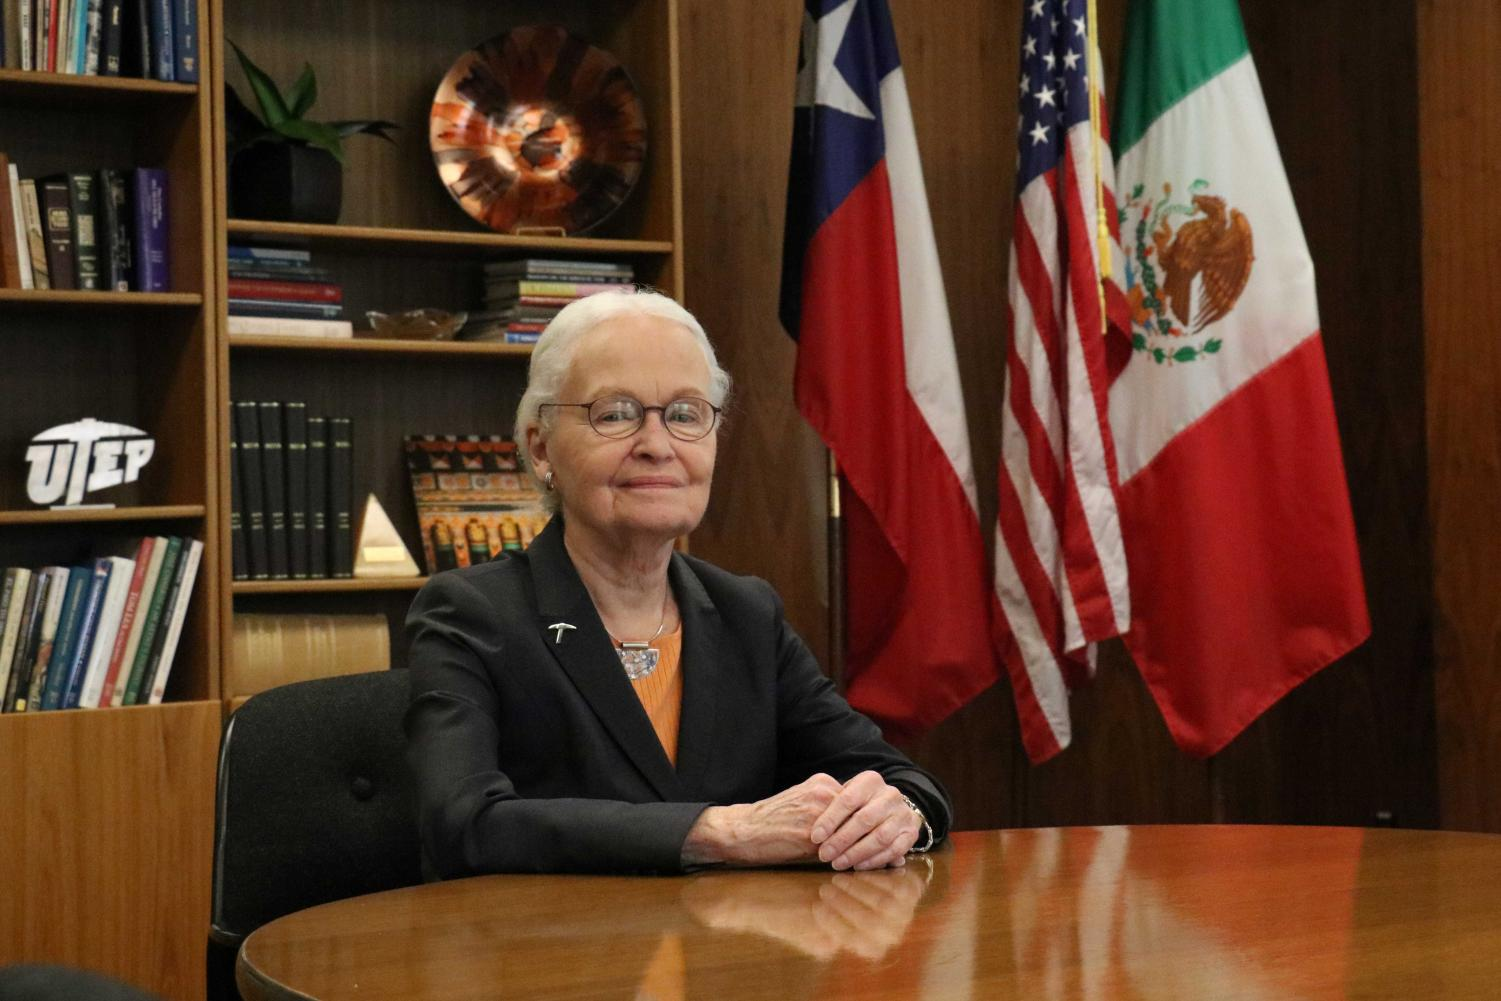 UTEP President Dr. Diana Natalicio announced her retirement from the university May 22 2018.